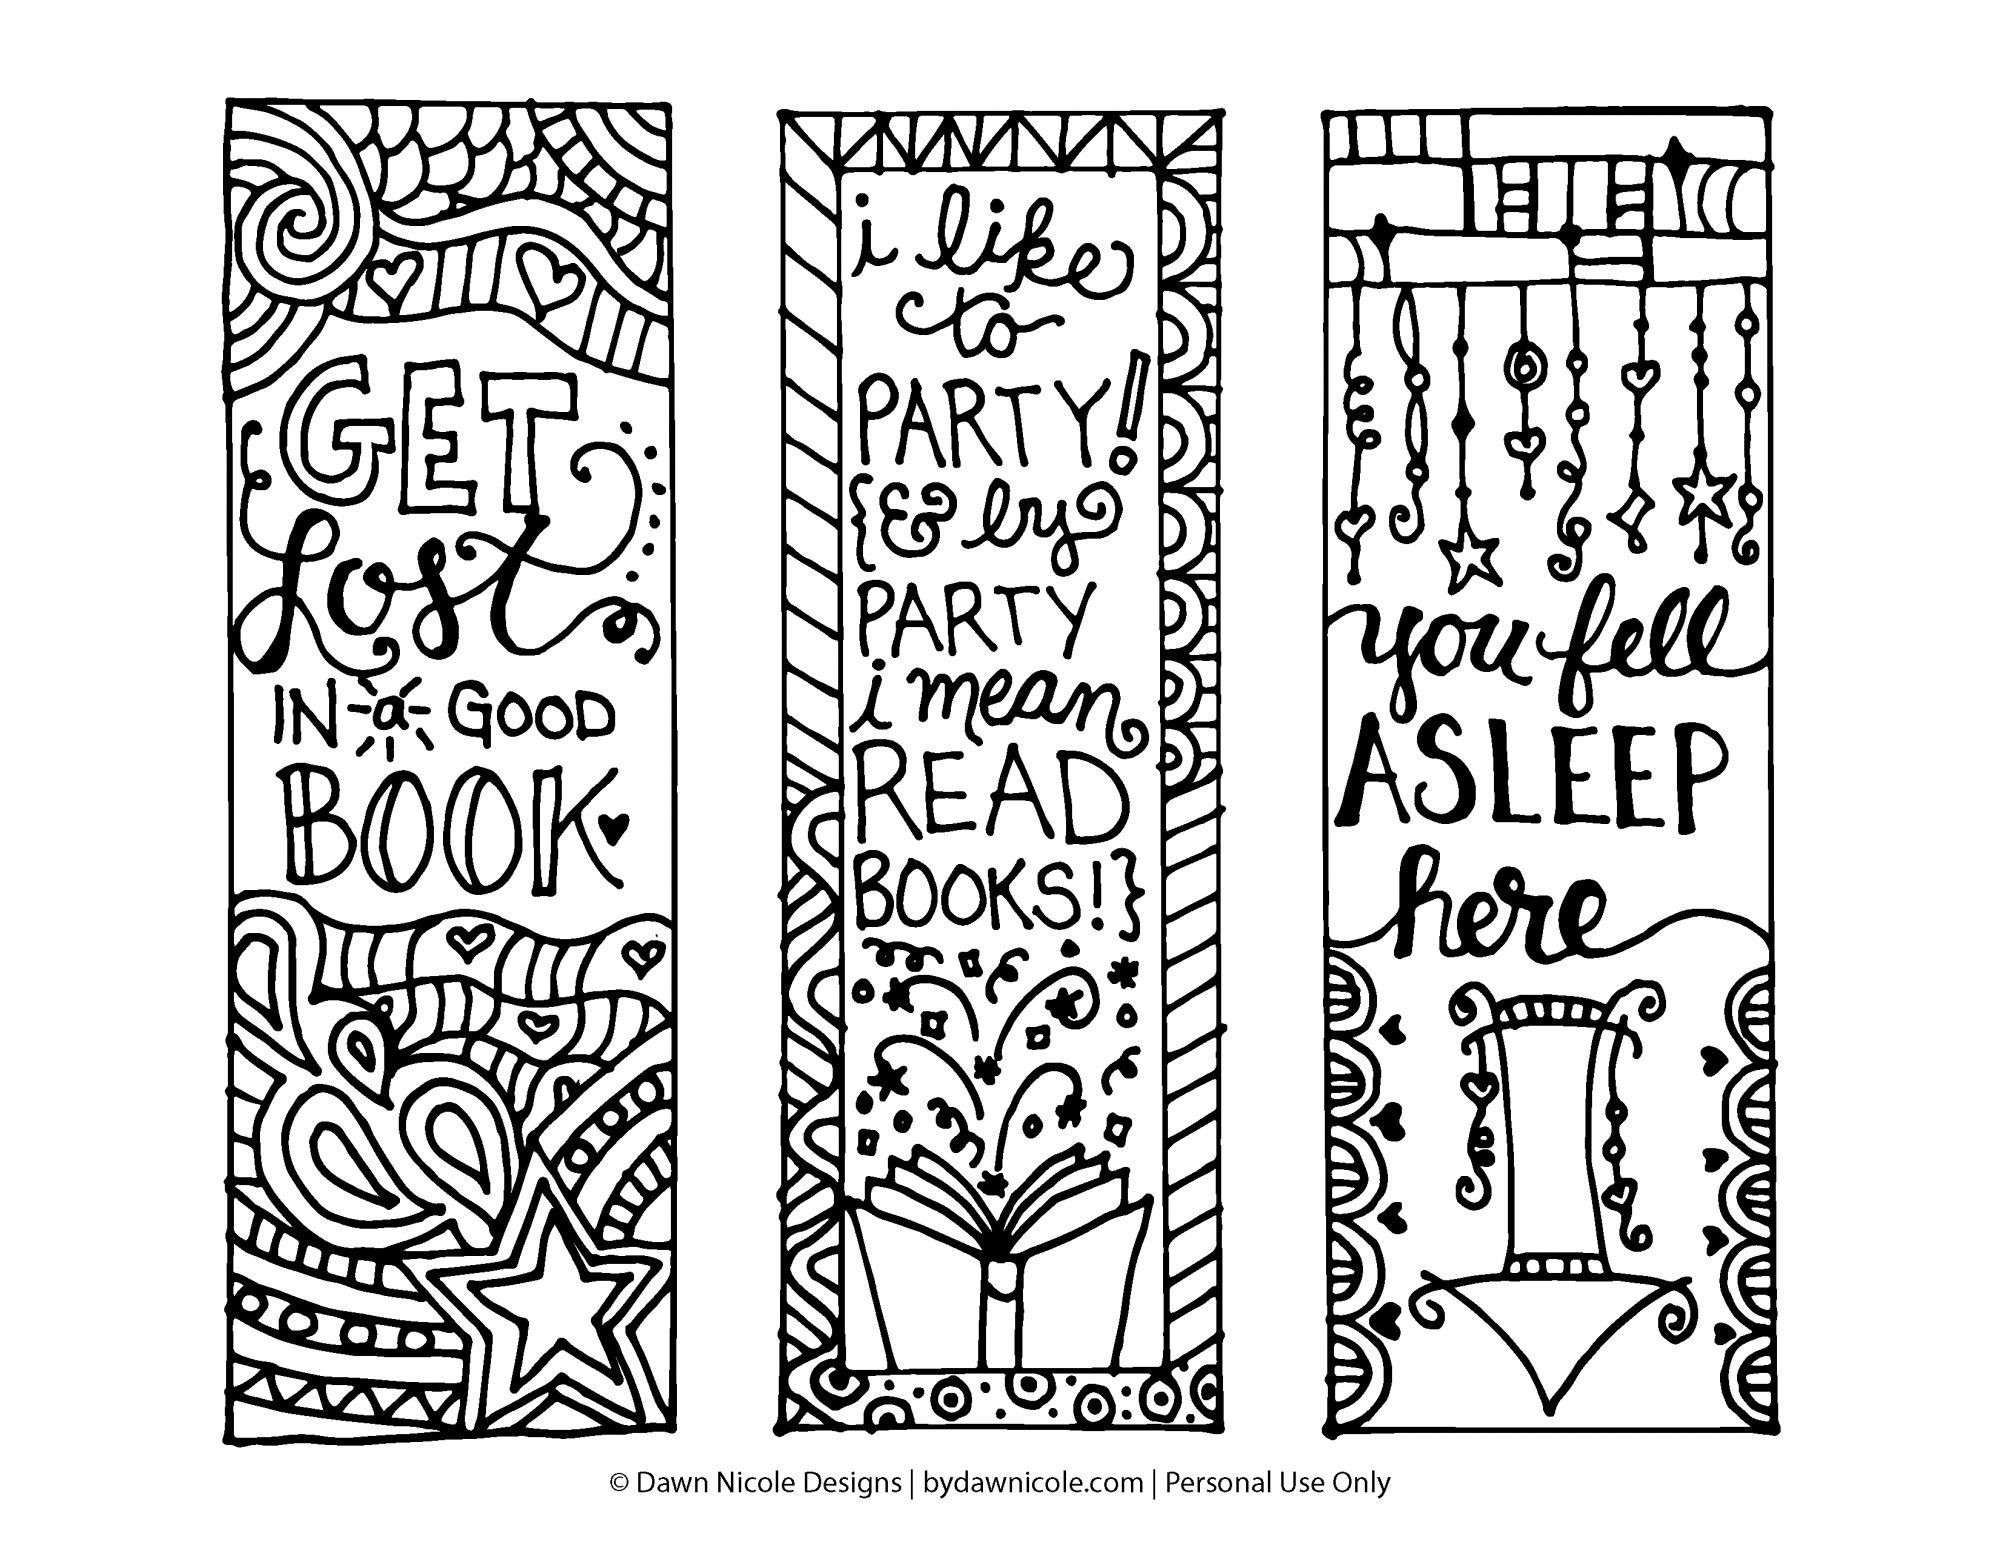 Free Printable Bookmarks - Yahoo Image Search Results | School pertaining to Black And White Bookmarks To Print 26664